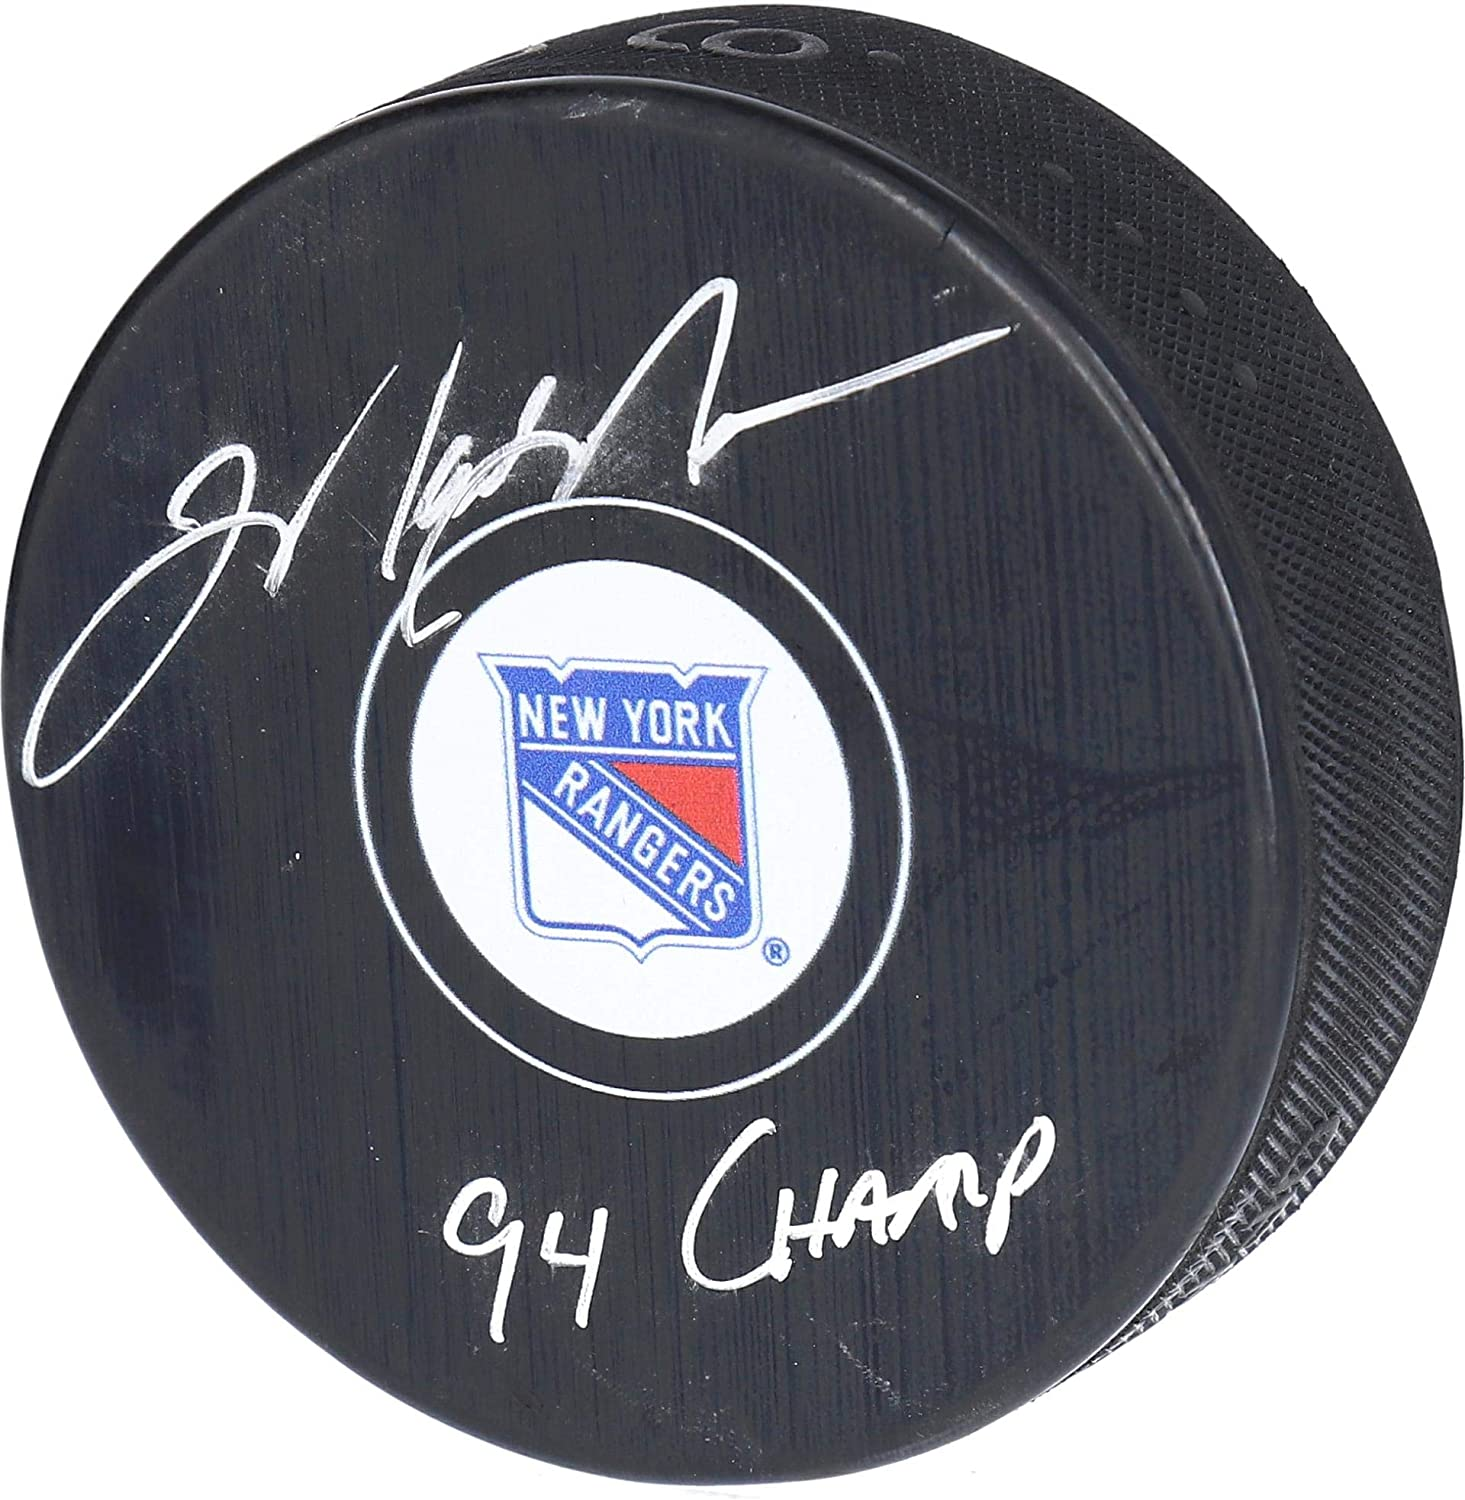 Mark Messier New York Rangers Autographed Puck with